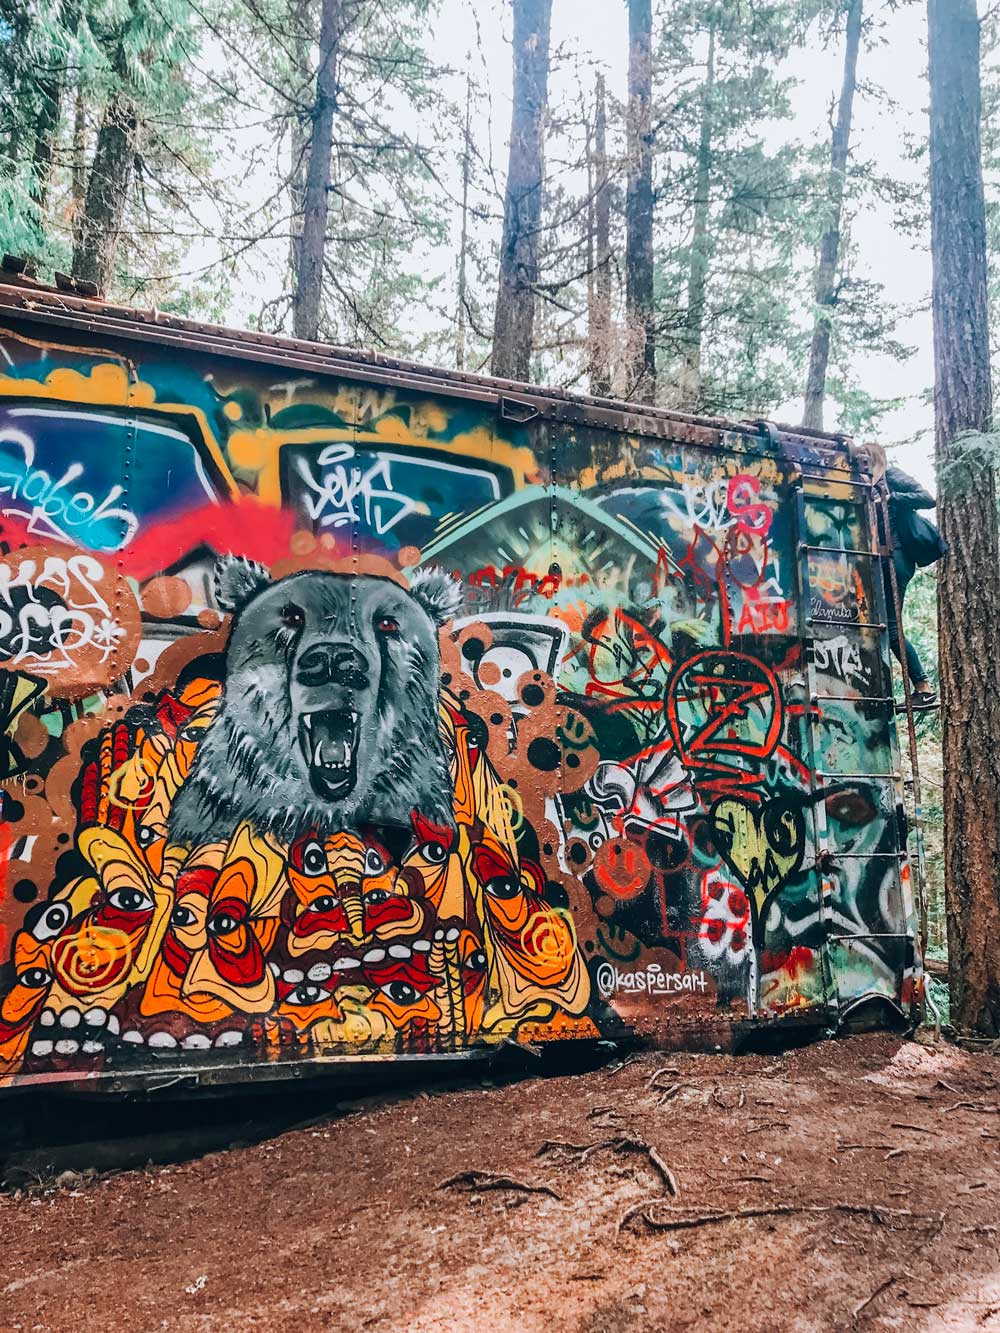 The Whistler Train Wreak Art is an easy hike in Whistler and worth seeing. This Whistler first timers guide covers all the things to see, do, and places to stay. #whistler #bc #canada